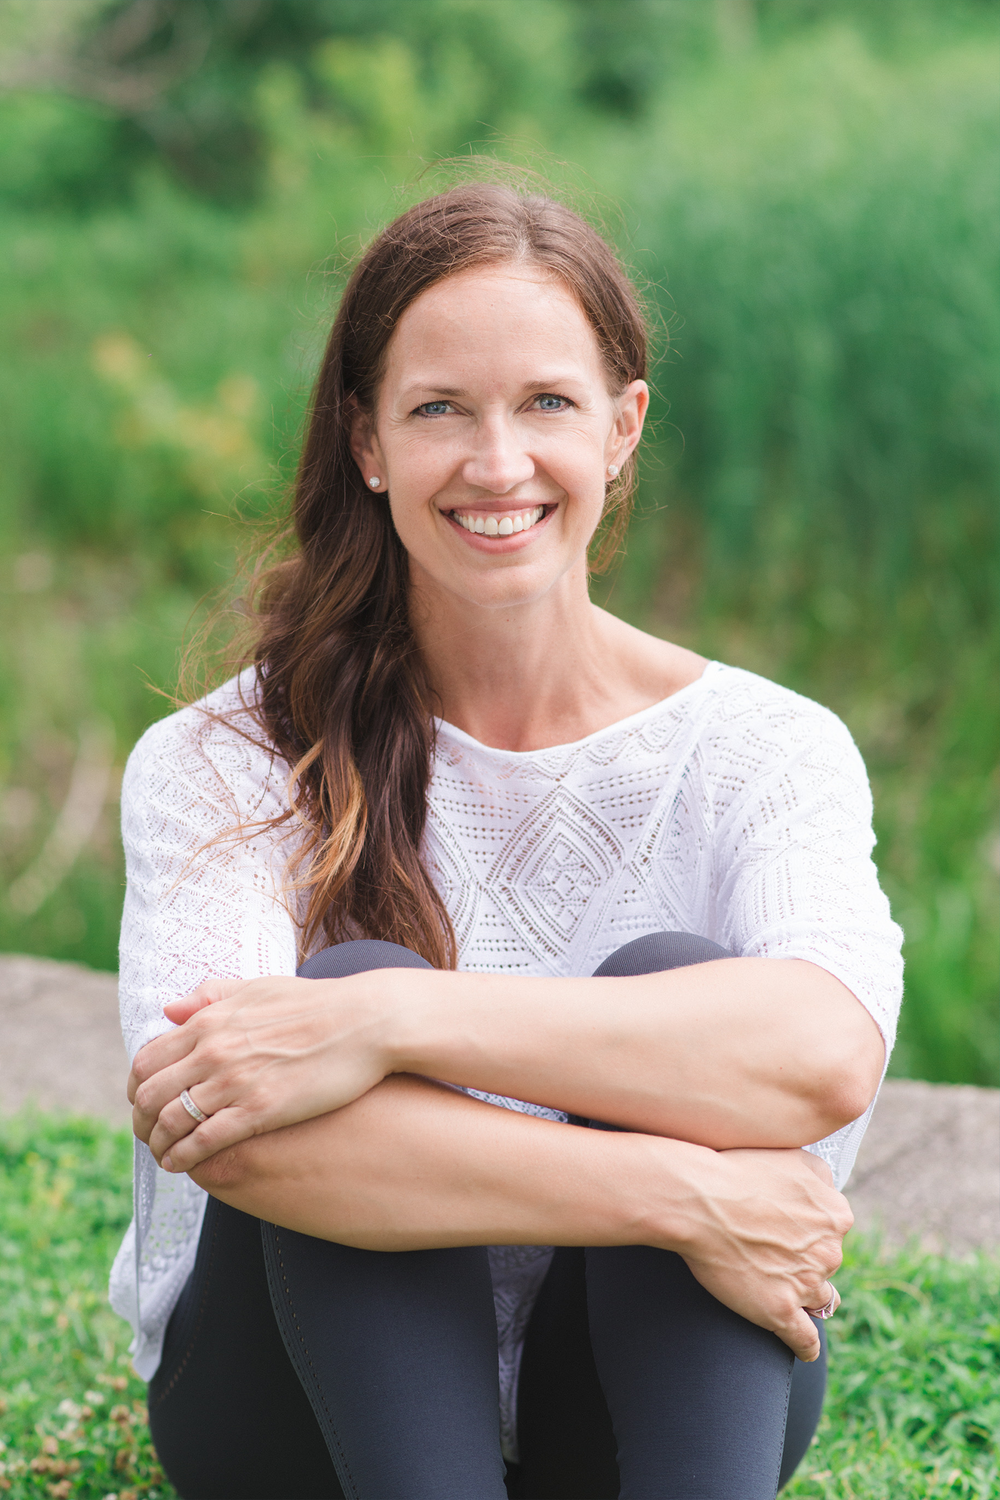 Tracy Billows - I love to teach a 💪strong 💪, slow flow that leaves you feeling centred, grounded, and ready to take on the world 🌍. I also have a deep appreciation for the quieter practices like restorative, yin, and meditation, and weave elements of these into my classes. 💕 .While I've been teaching for over 10 years, I consider myself first and foremost a student 📚. I've taken countless trainings and workshops with many incredibly gifted teachers in countries around the world. I just can't get enough.As someone who has struggled on and off with depression for many years, yoga has, without a doubt, been the most reliable and consistent way for me to remain ✨healthy ✨ on every level. Yoga literally saved my life and I've dedicated my life to bringing the gift of yoga to others, through my teaching and yoga studios ❤️.